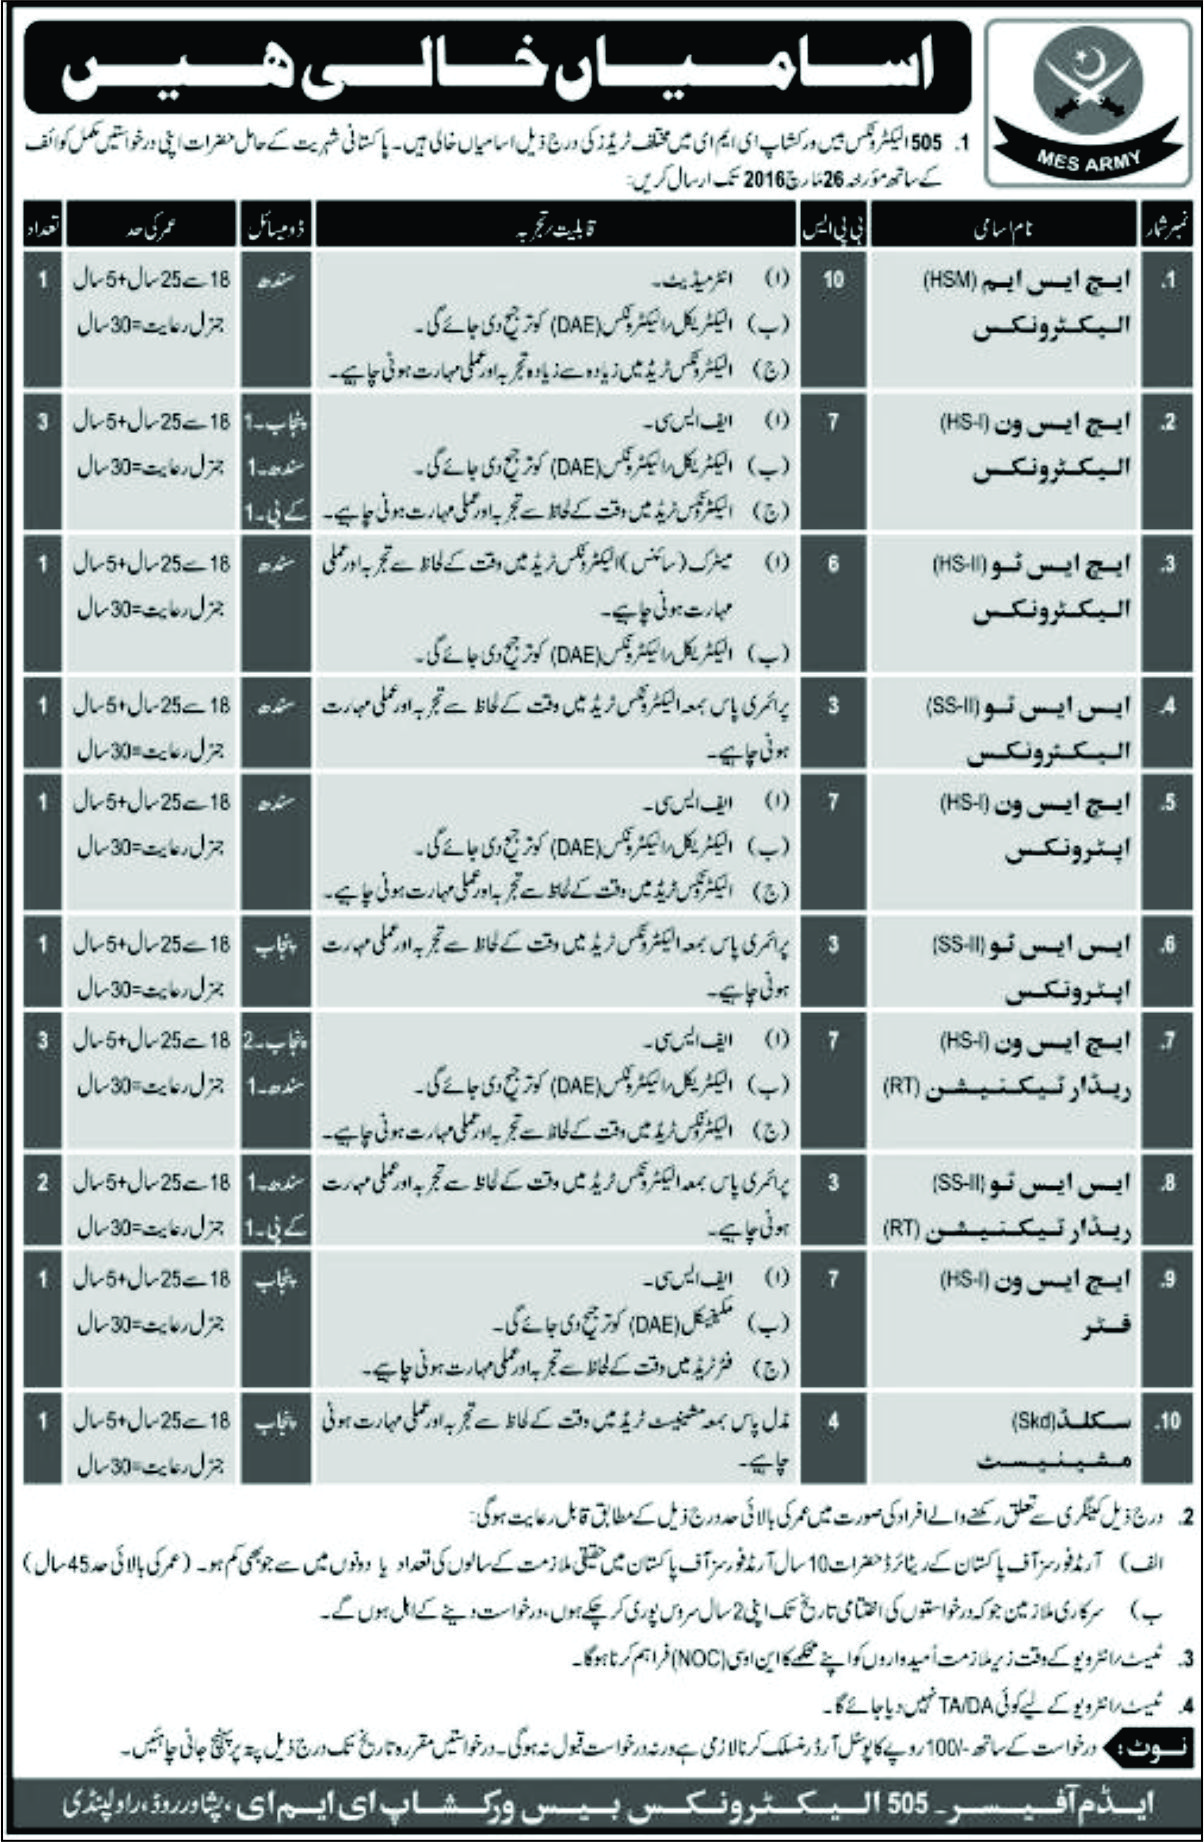 Pakistan Military Engineering Service MES Army Jobs 2016